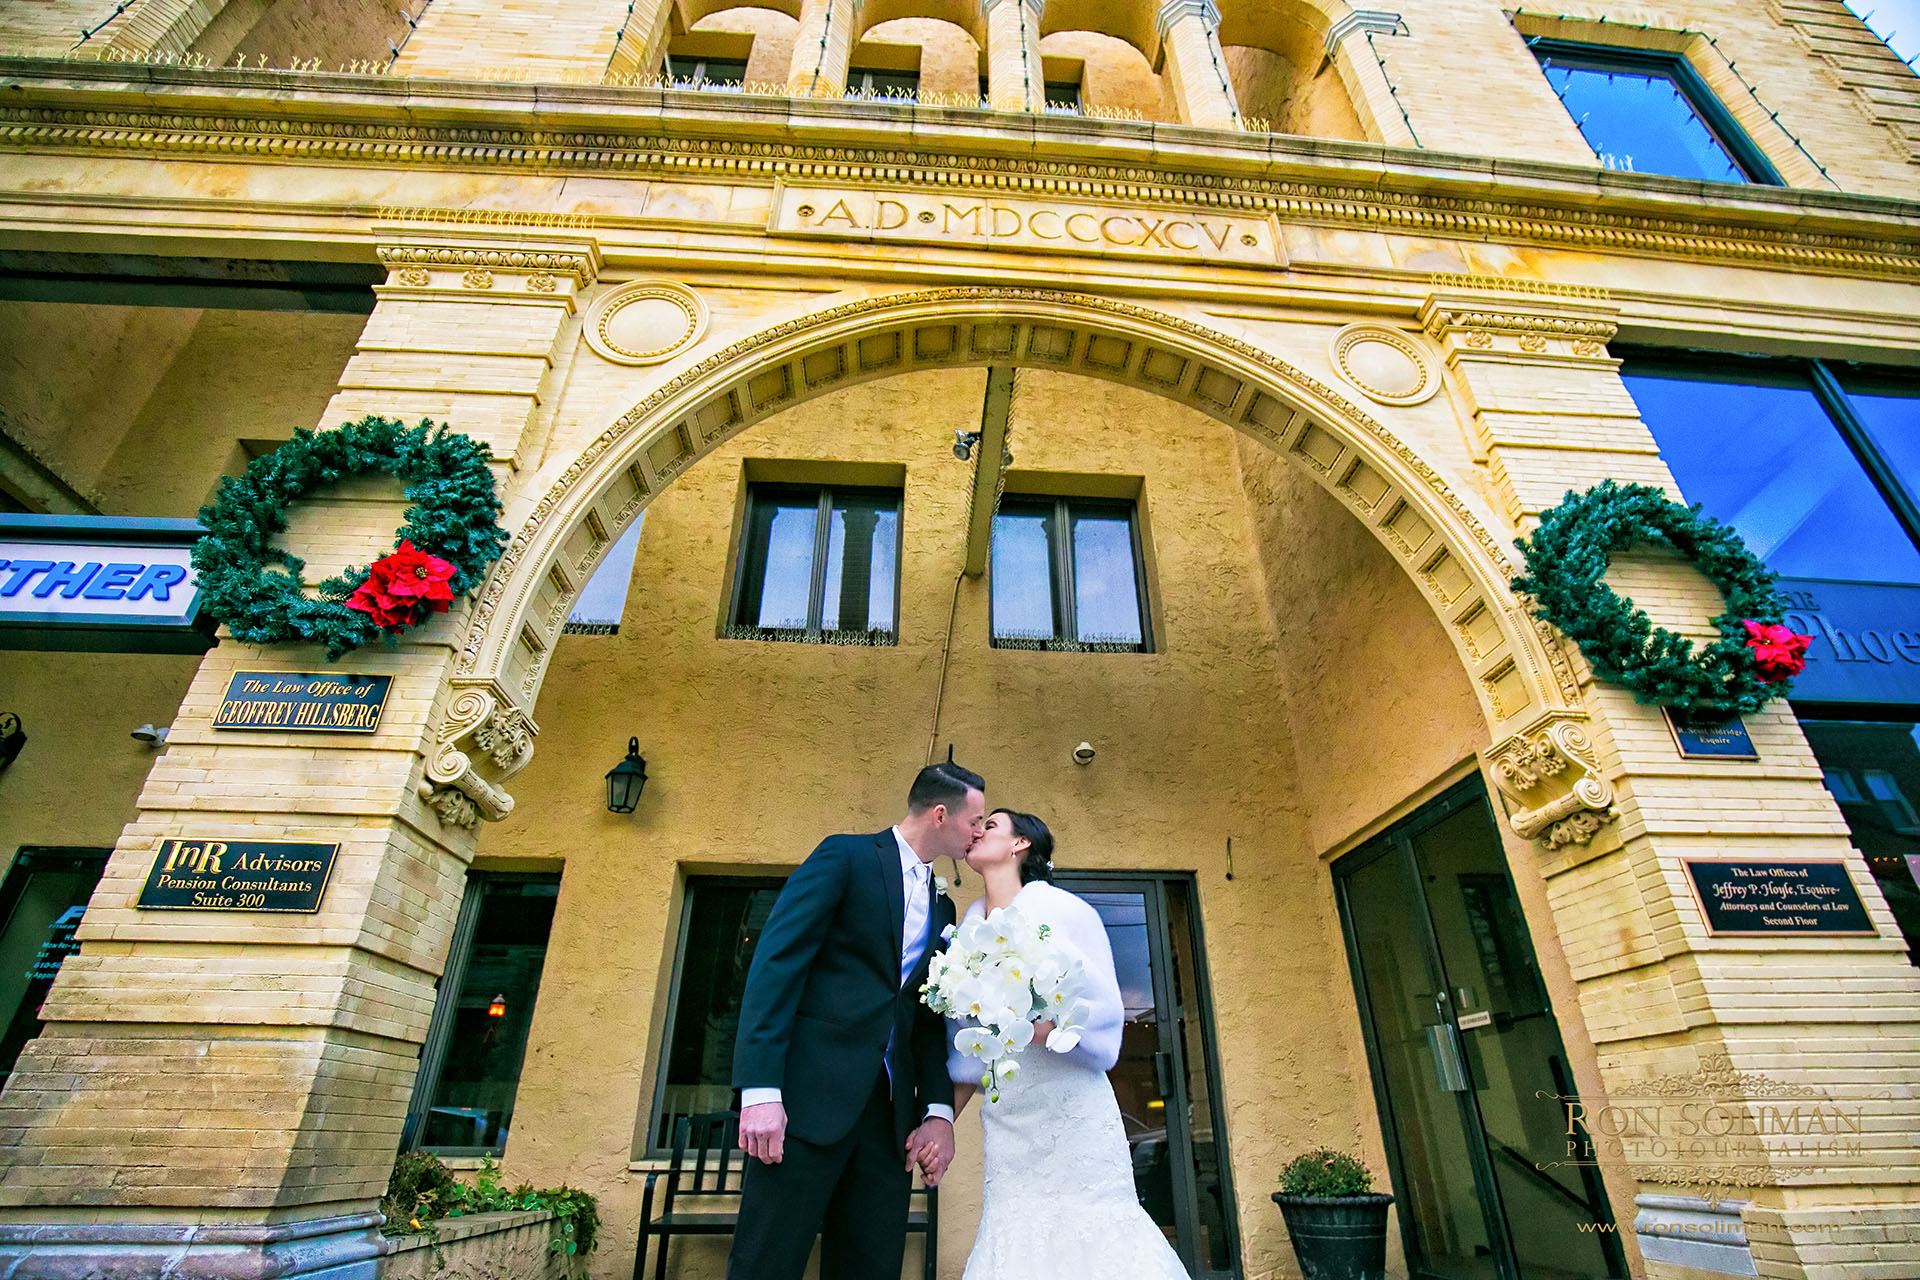 Media Pennsylvania Courthouse wedding photos